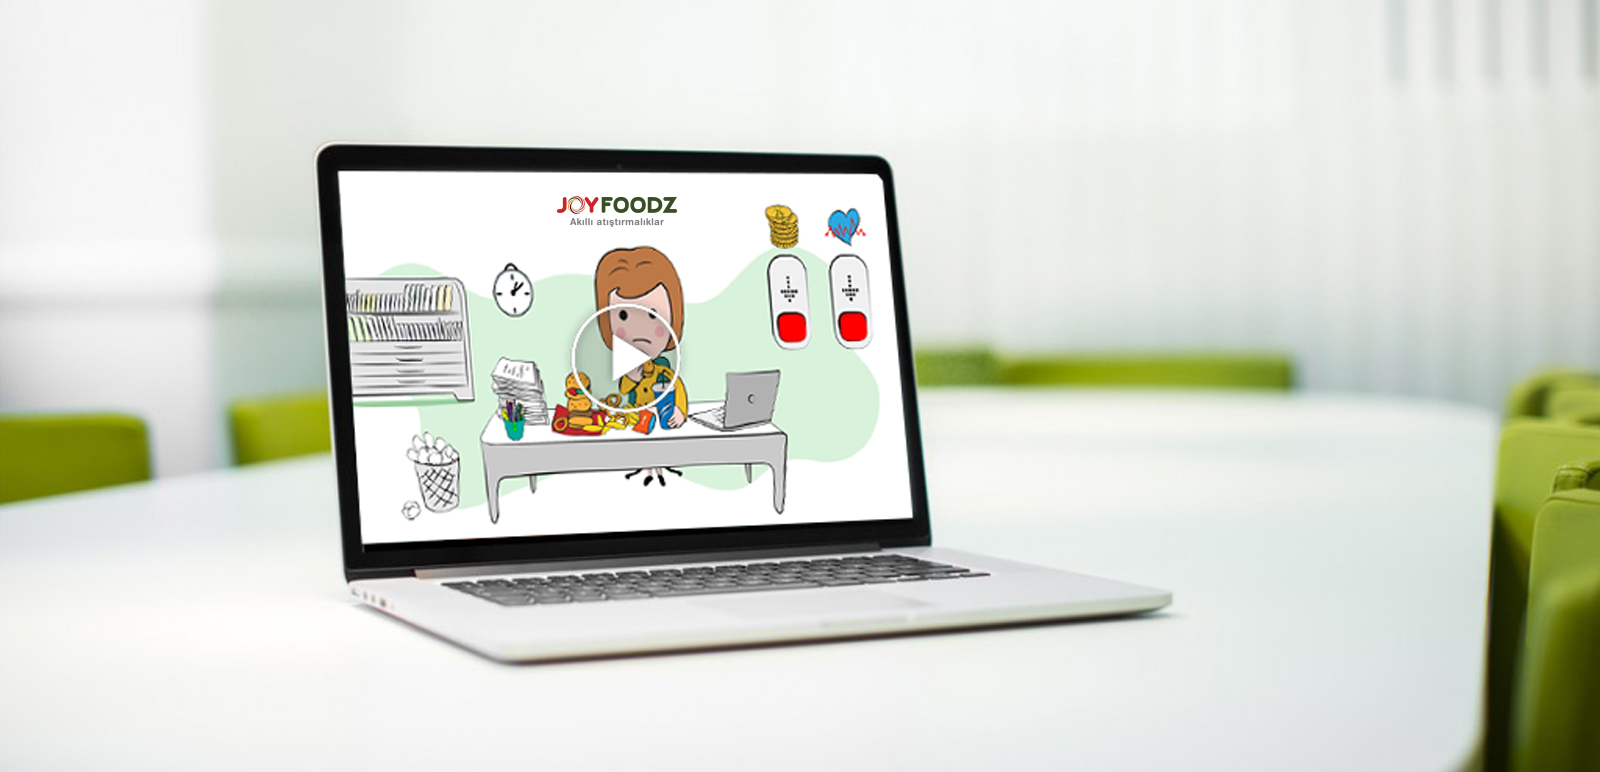 Joyfoodz Animation, Illustration 1